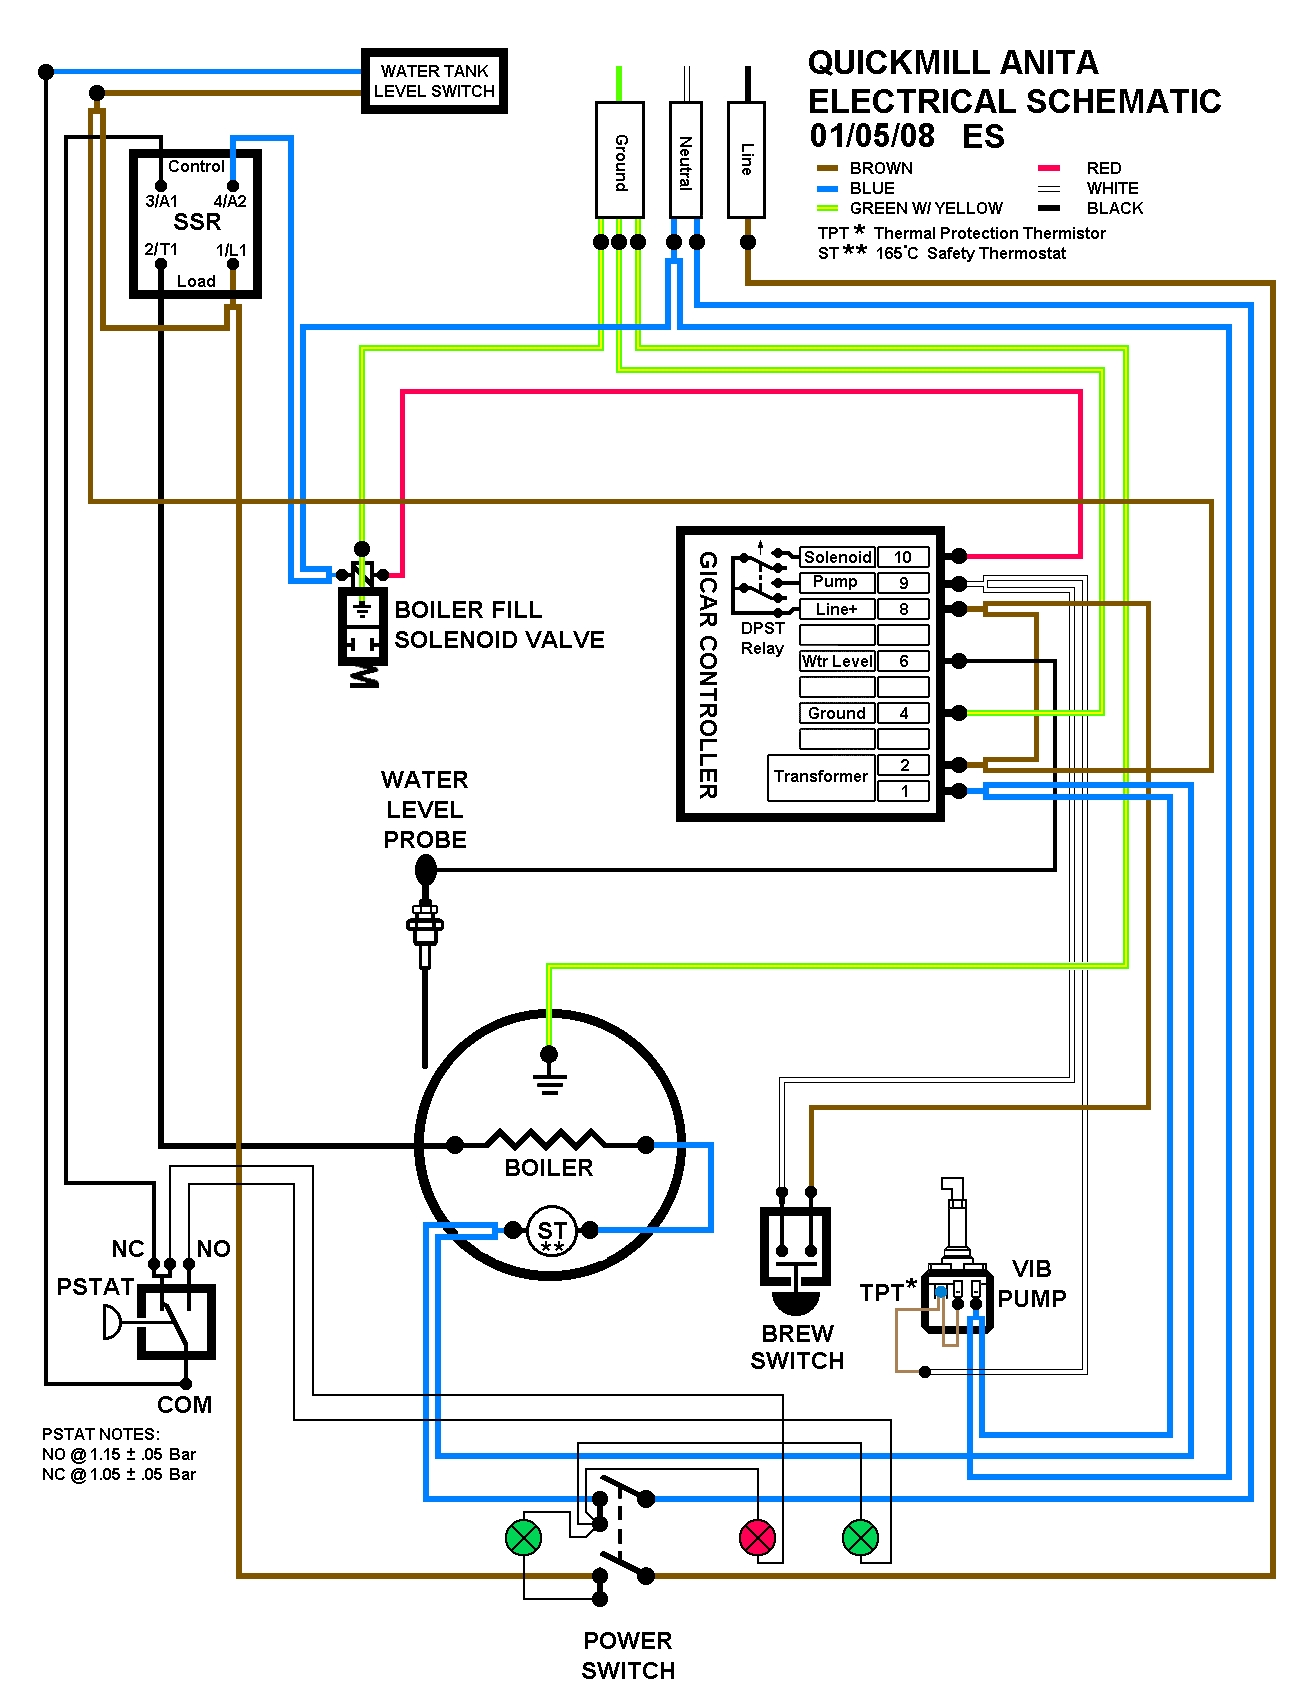 QM_ELEC_1 wiring diagram for a boiler the wiring diagram readingrat net steam boiler wiring diagram at readyjetset.co